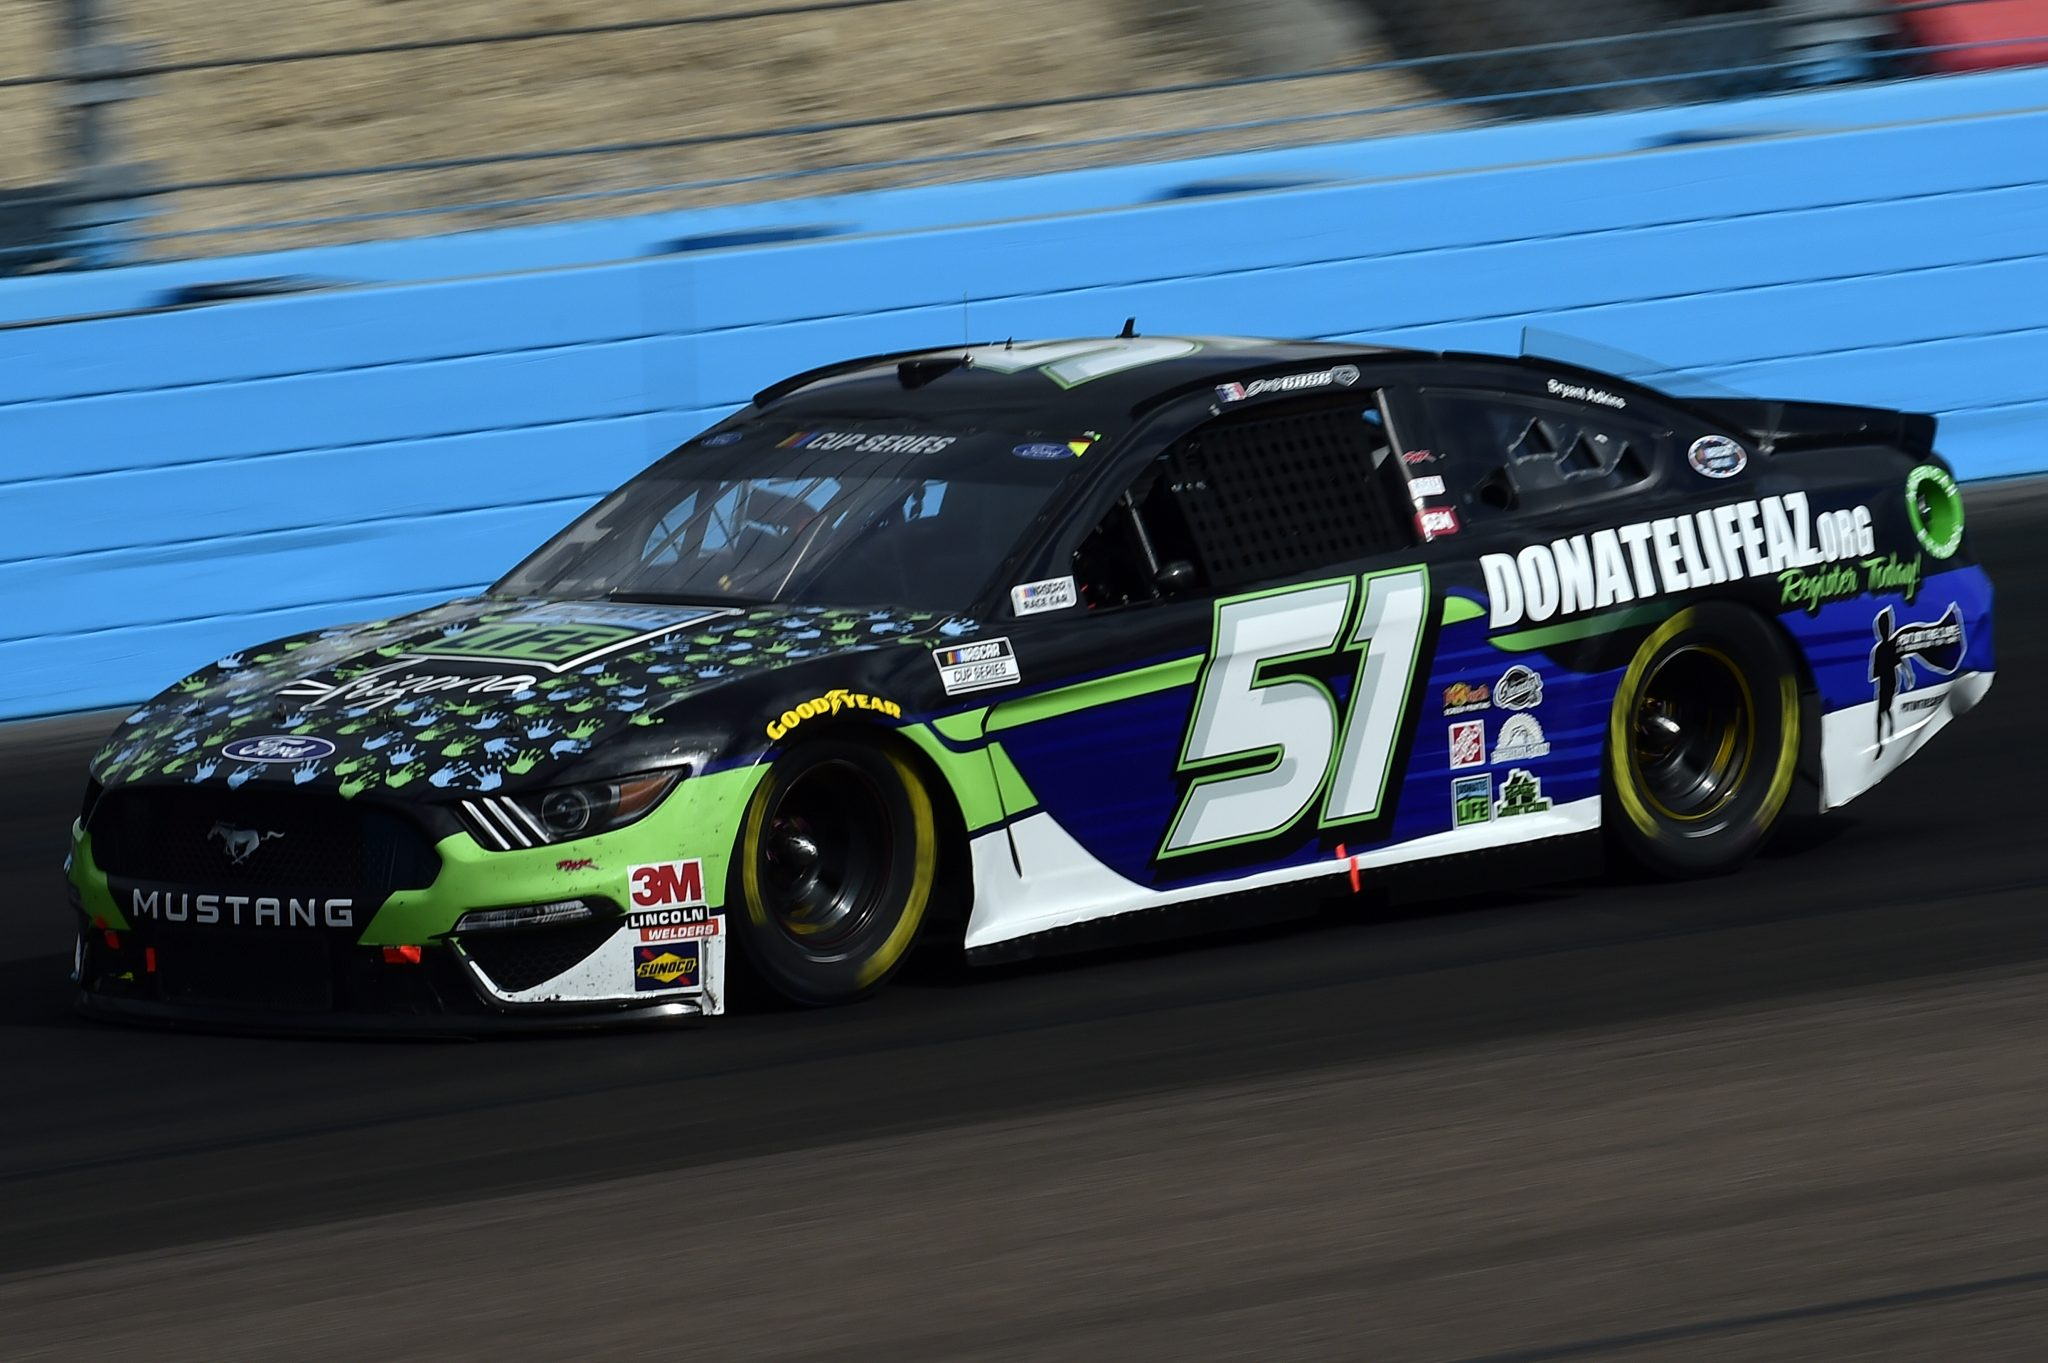 AVONDALE, ARIZONA - NOVEMBER 08: Joey Gase, driver of the #51 Ford, drives during the NASCAR Cup Series Season Finale 500 at Phoenix Raceway on November 08, 2020 in Avondale, Arizona. (Photo by Jared C. Tilton/Getty Images) | Getty Images